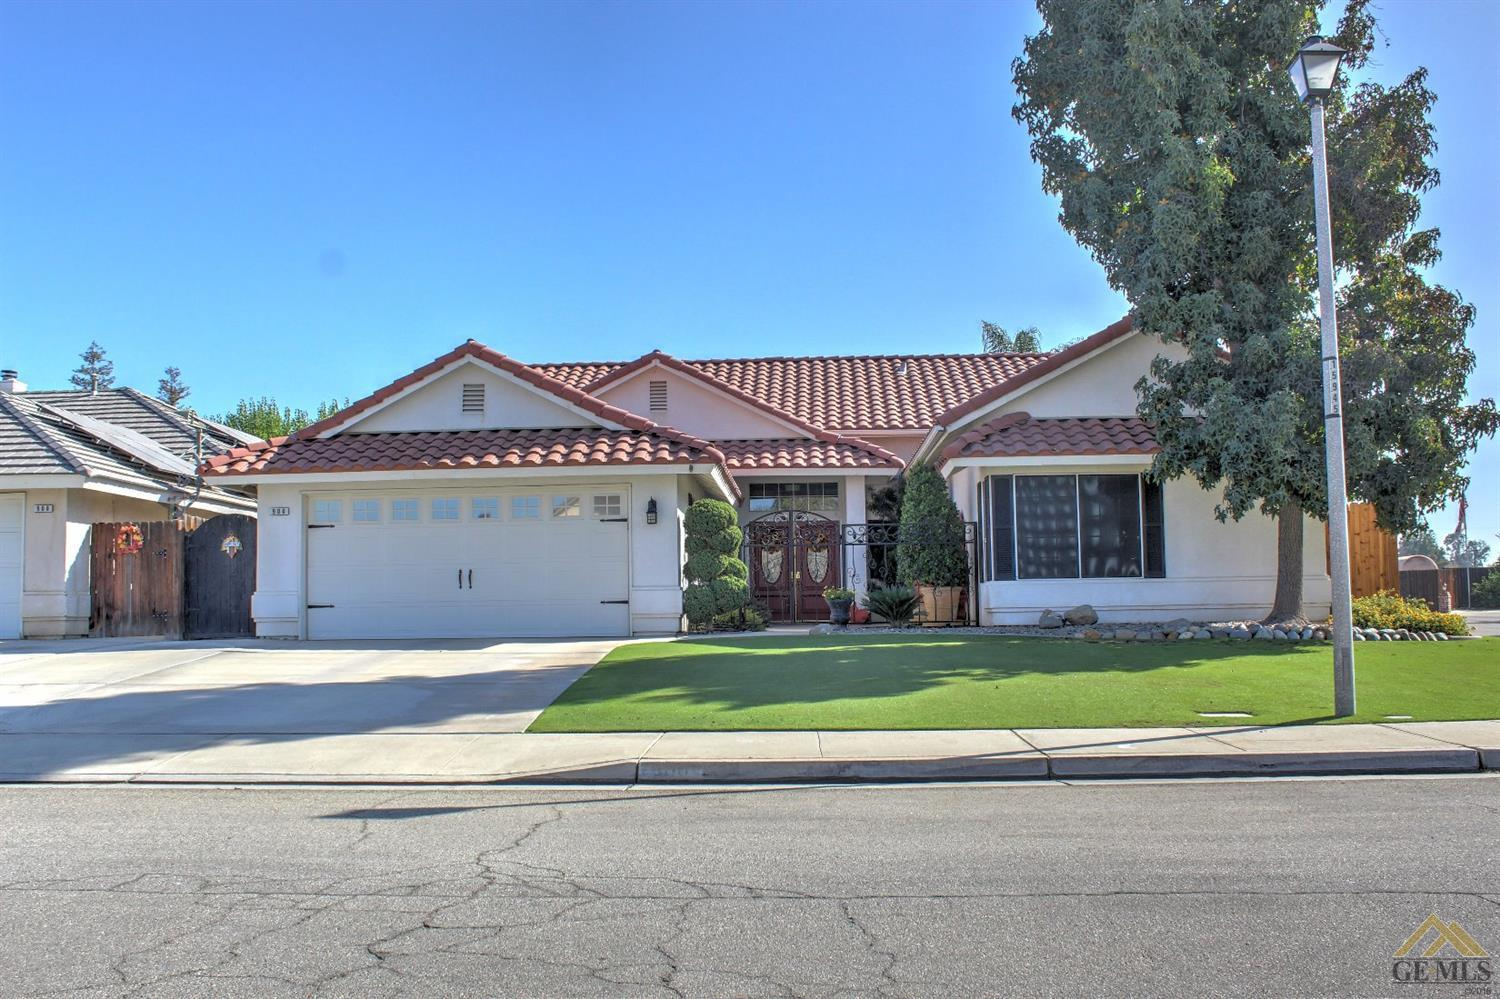 4 bed / 3 baths Home in Bakersfield for $399,900